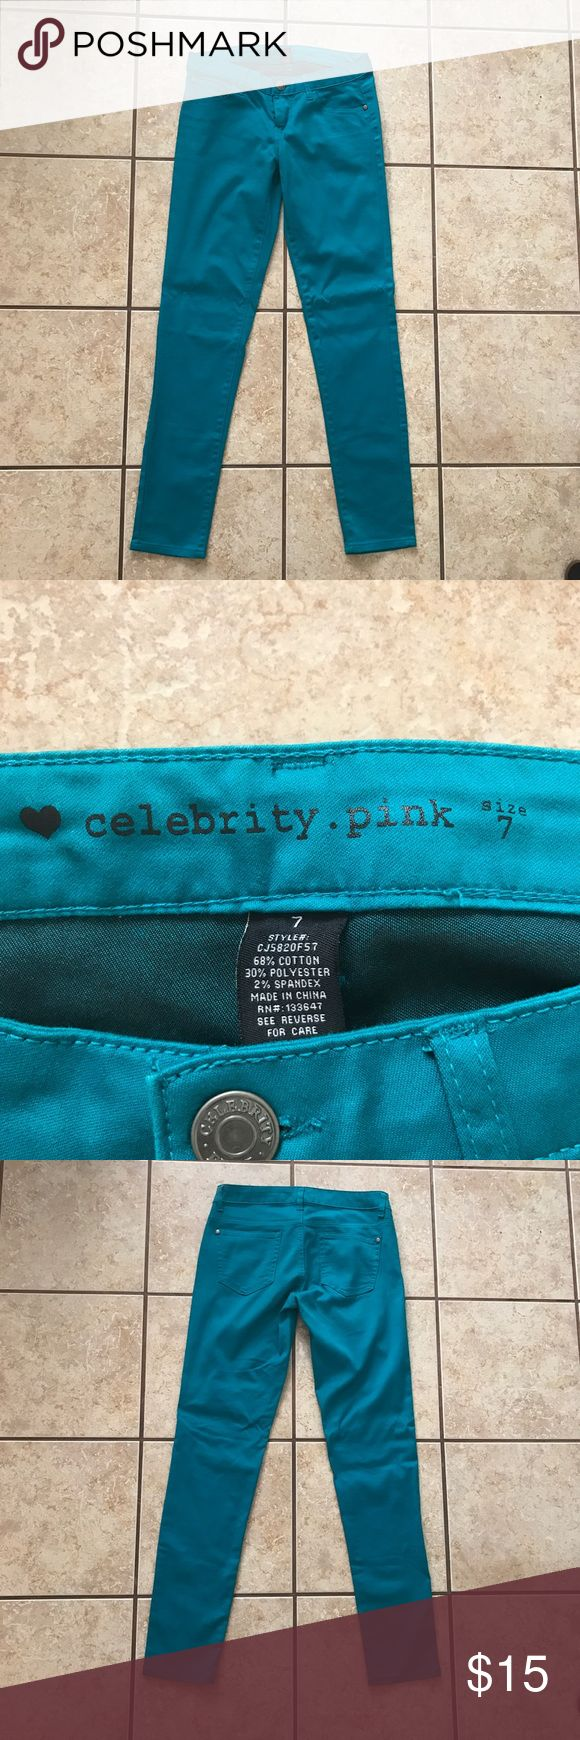 Celebrity Pink Bright Blue Skinny Pants Celebrity Pink skinny pants/jeans in bright blue. Also available in orange and red. Slightly elastic. Only worn a couple of time. Great condition. Celebrity Pink Pants Skinny